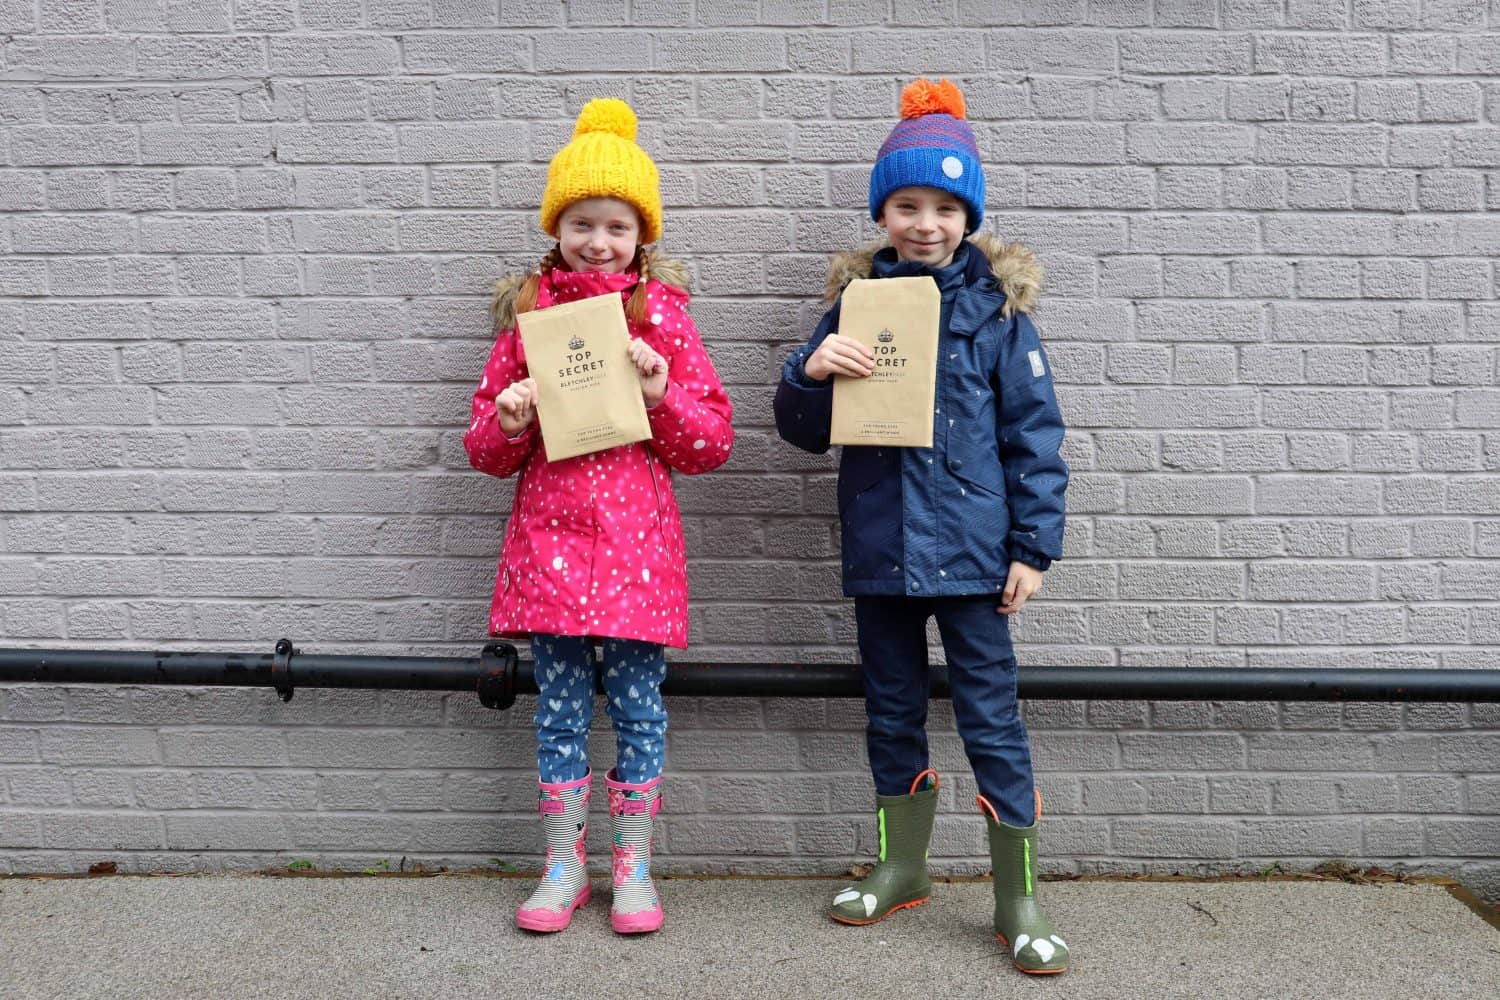 A Family Day Out at Bletchley Park with Activity Packs